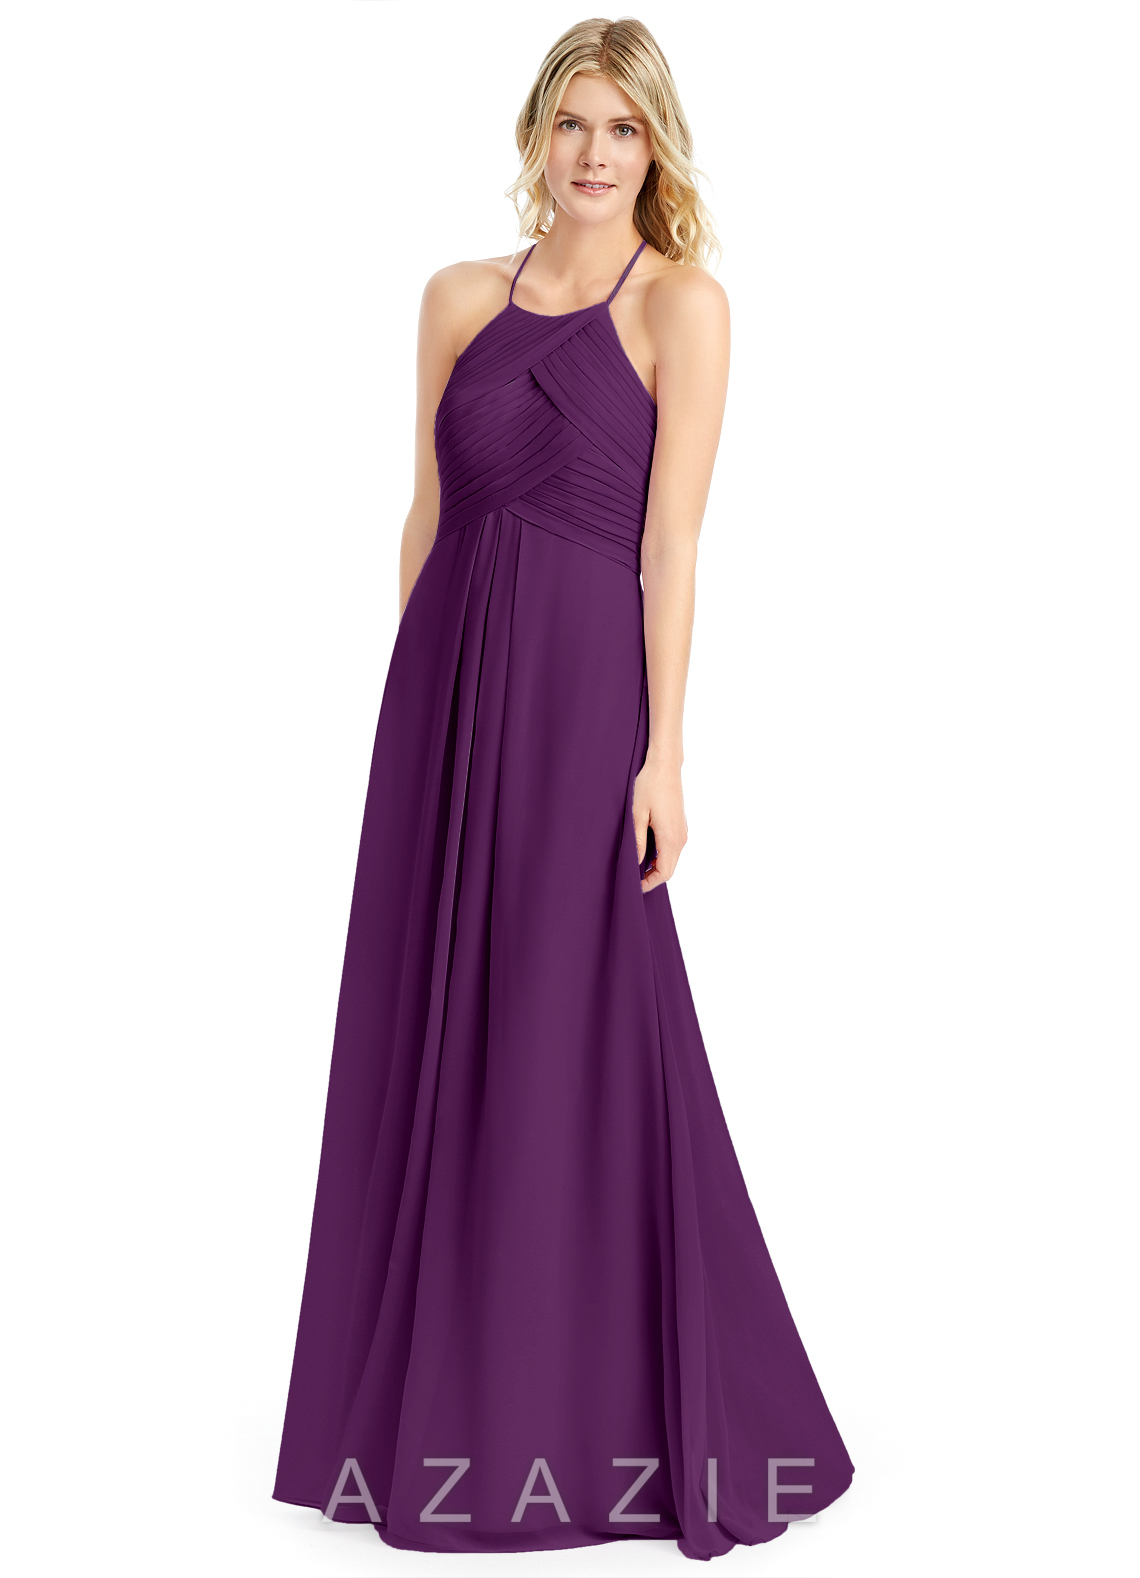 Grape Bridesmaid Dresses & Grape Gowns | Azazie